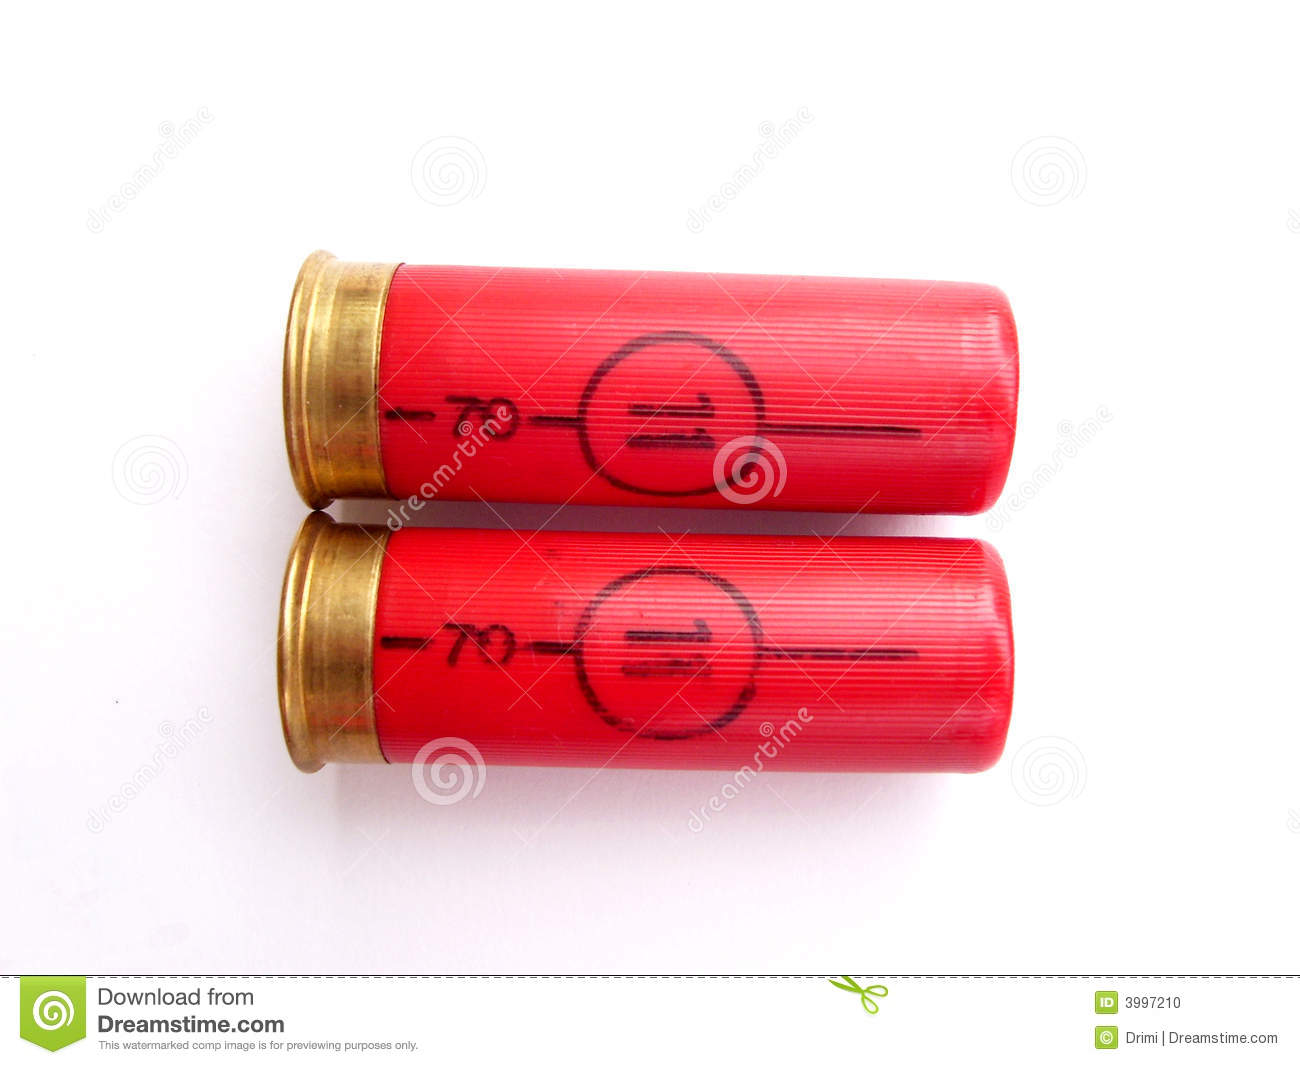 shotgun shells background - photo #27